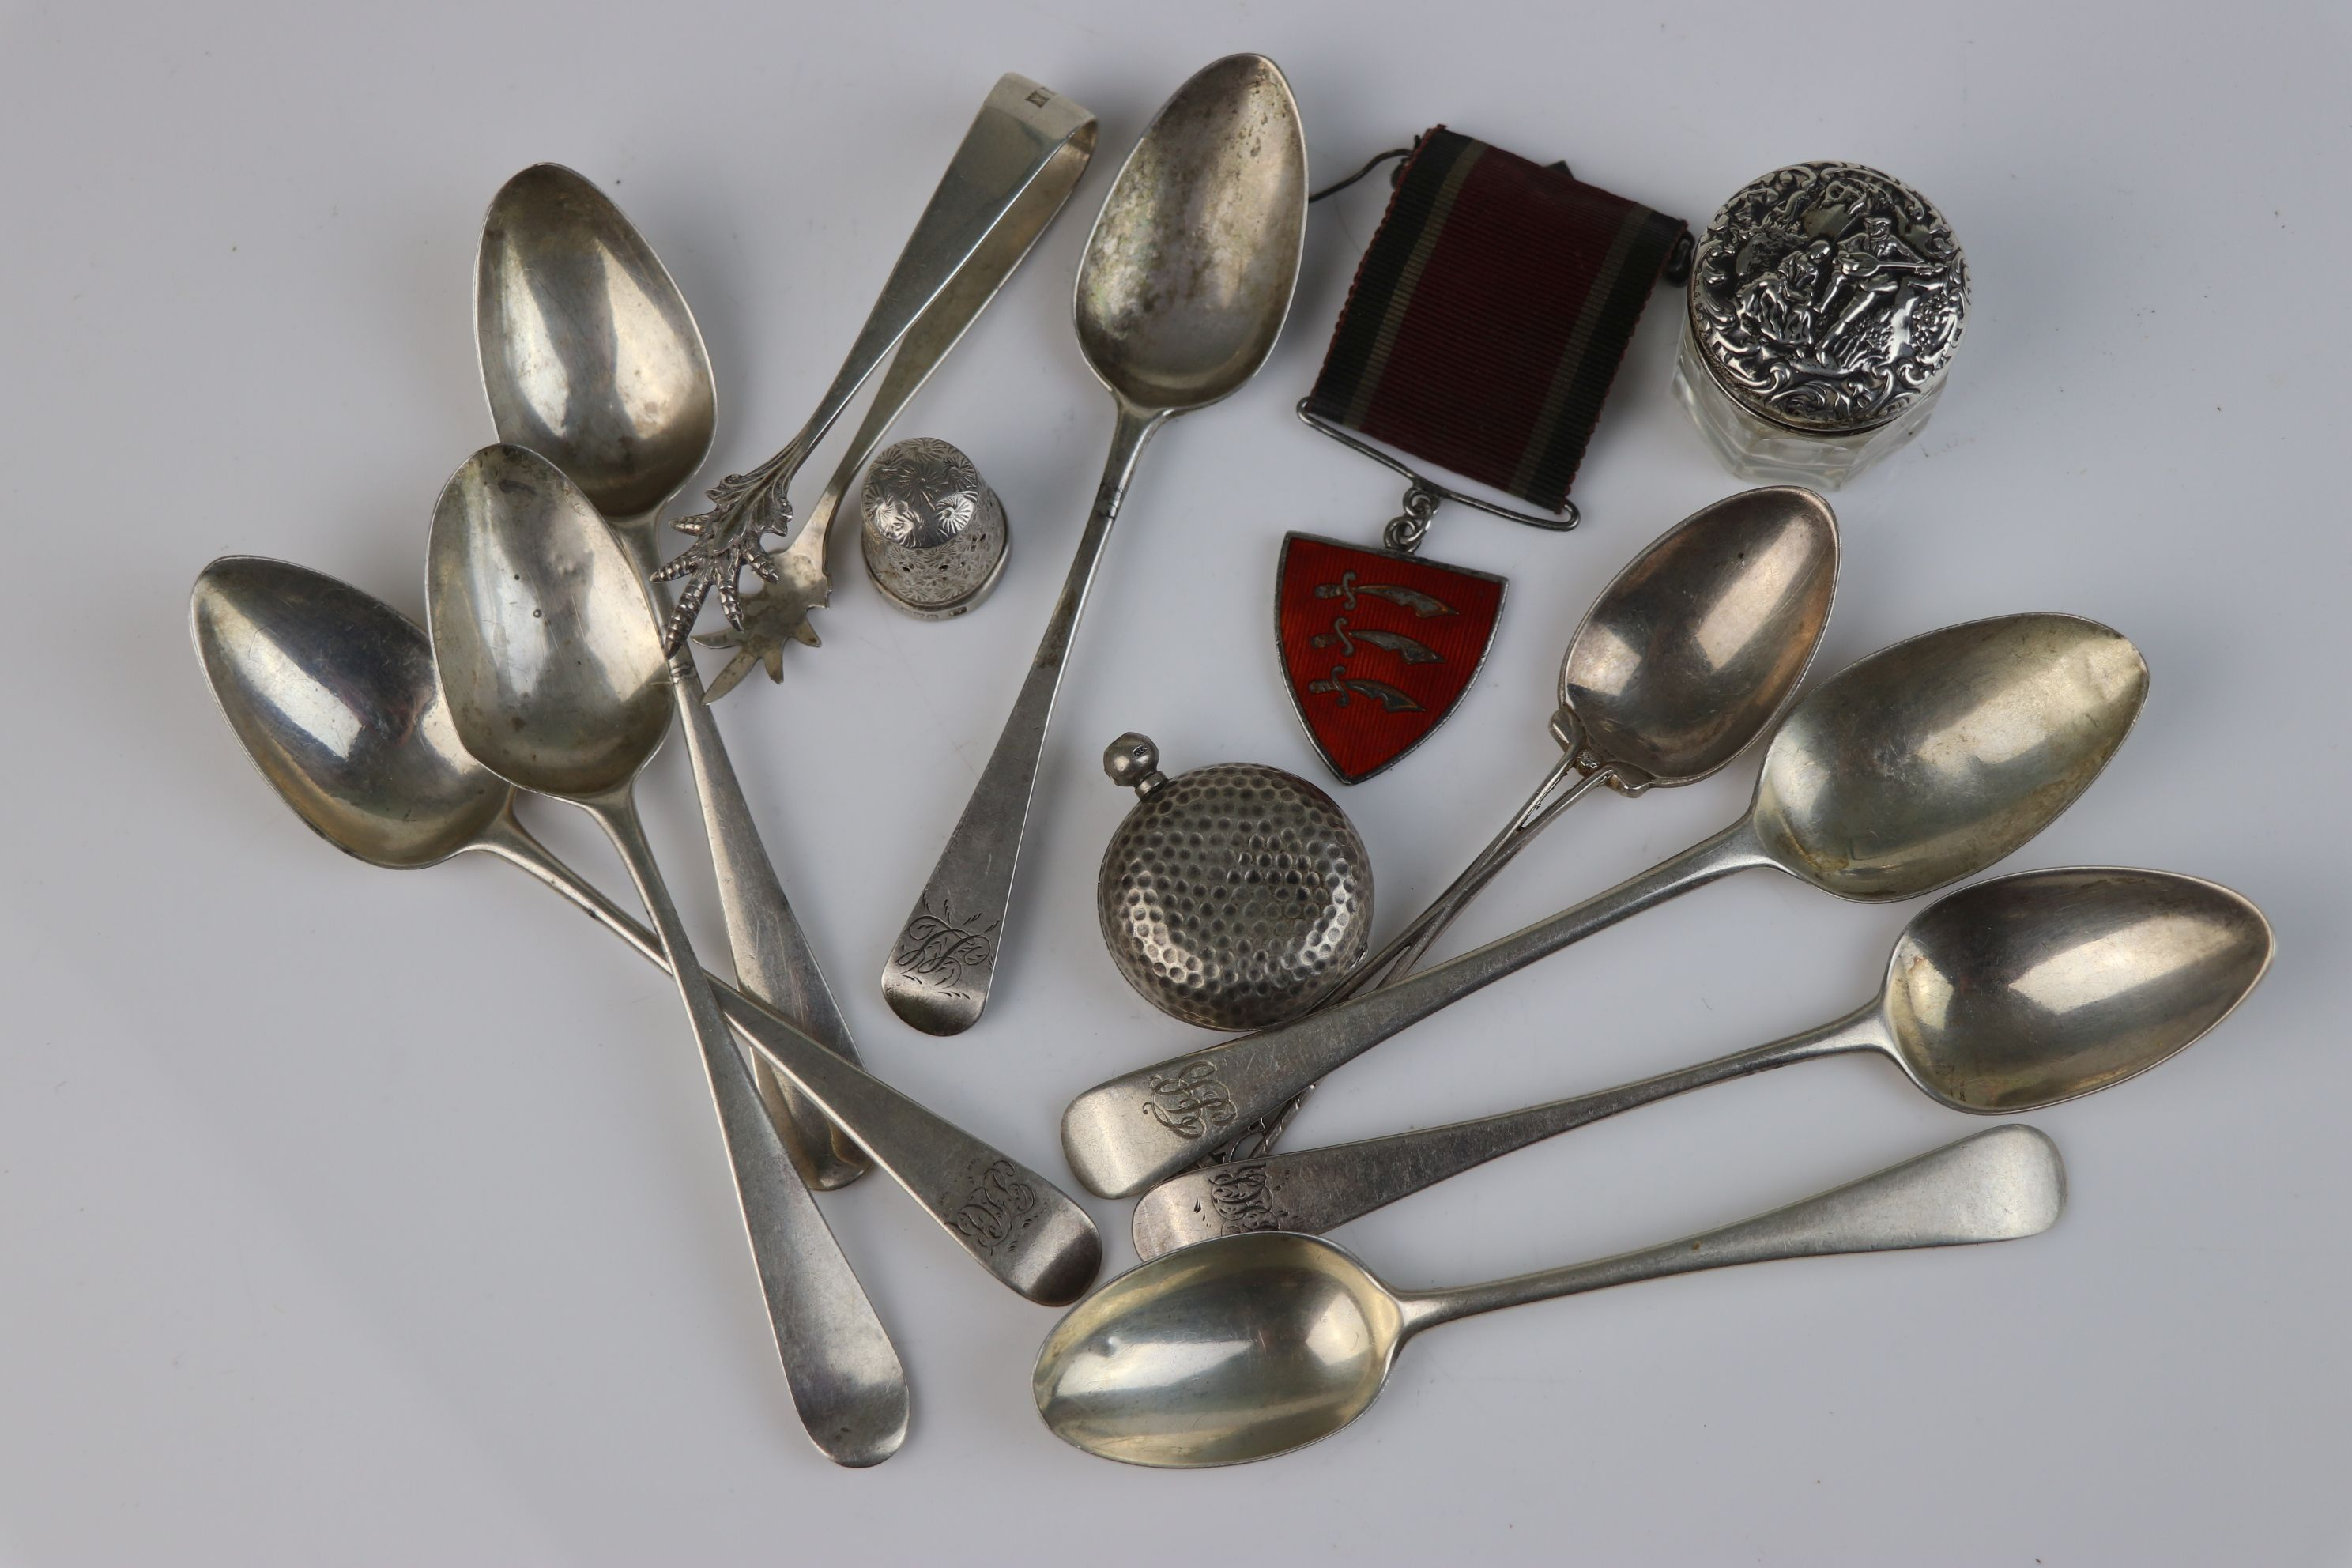 A collection of fully hallmarked sterling silver to include teaspoons, sugar tongs, sovereign case